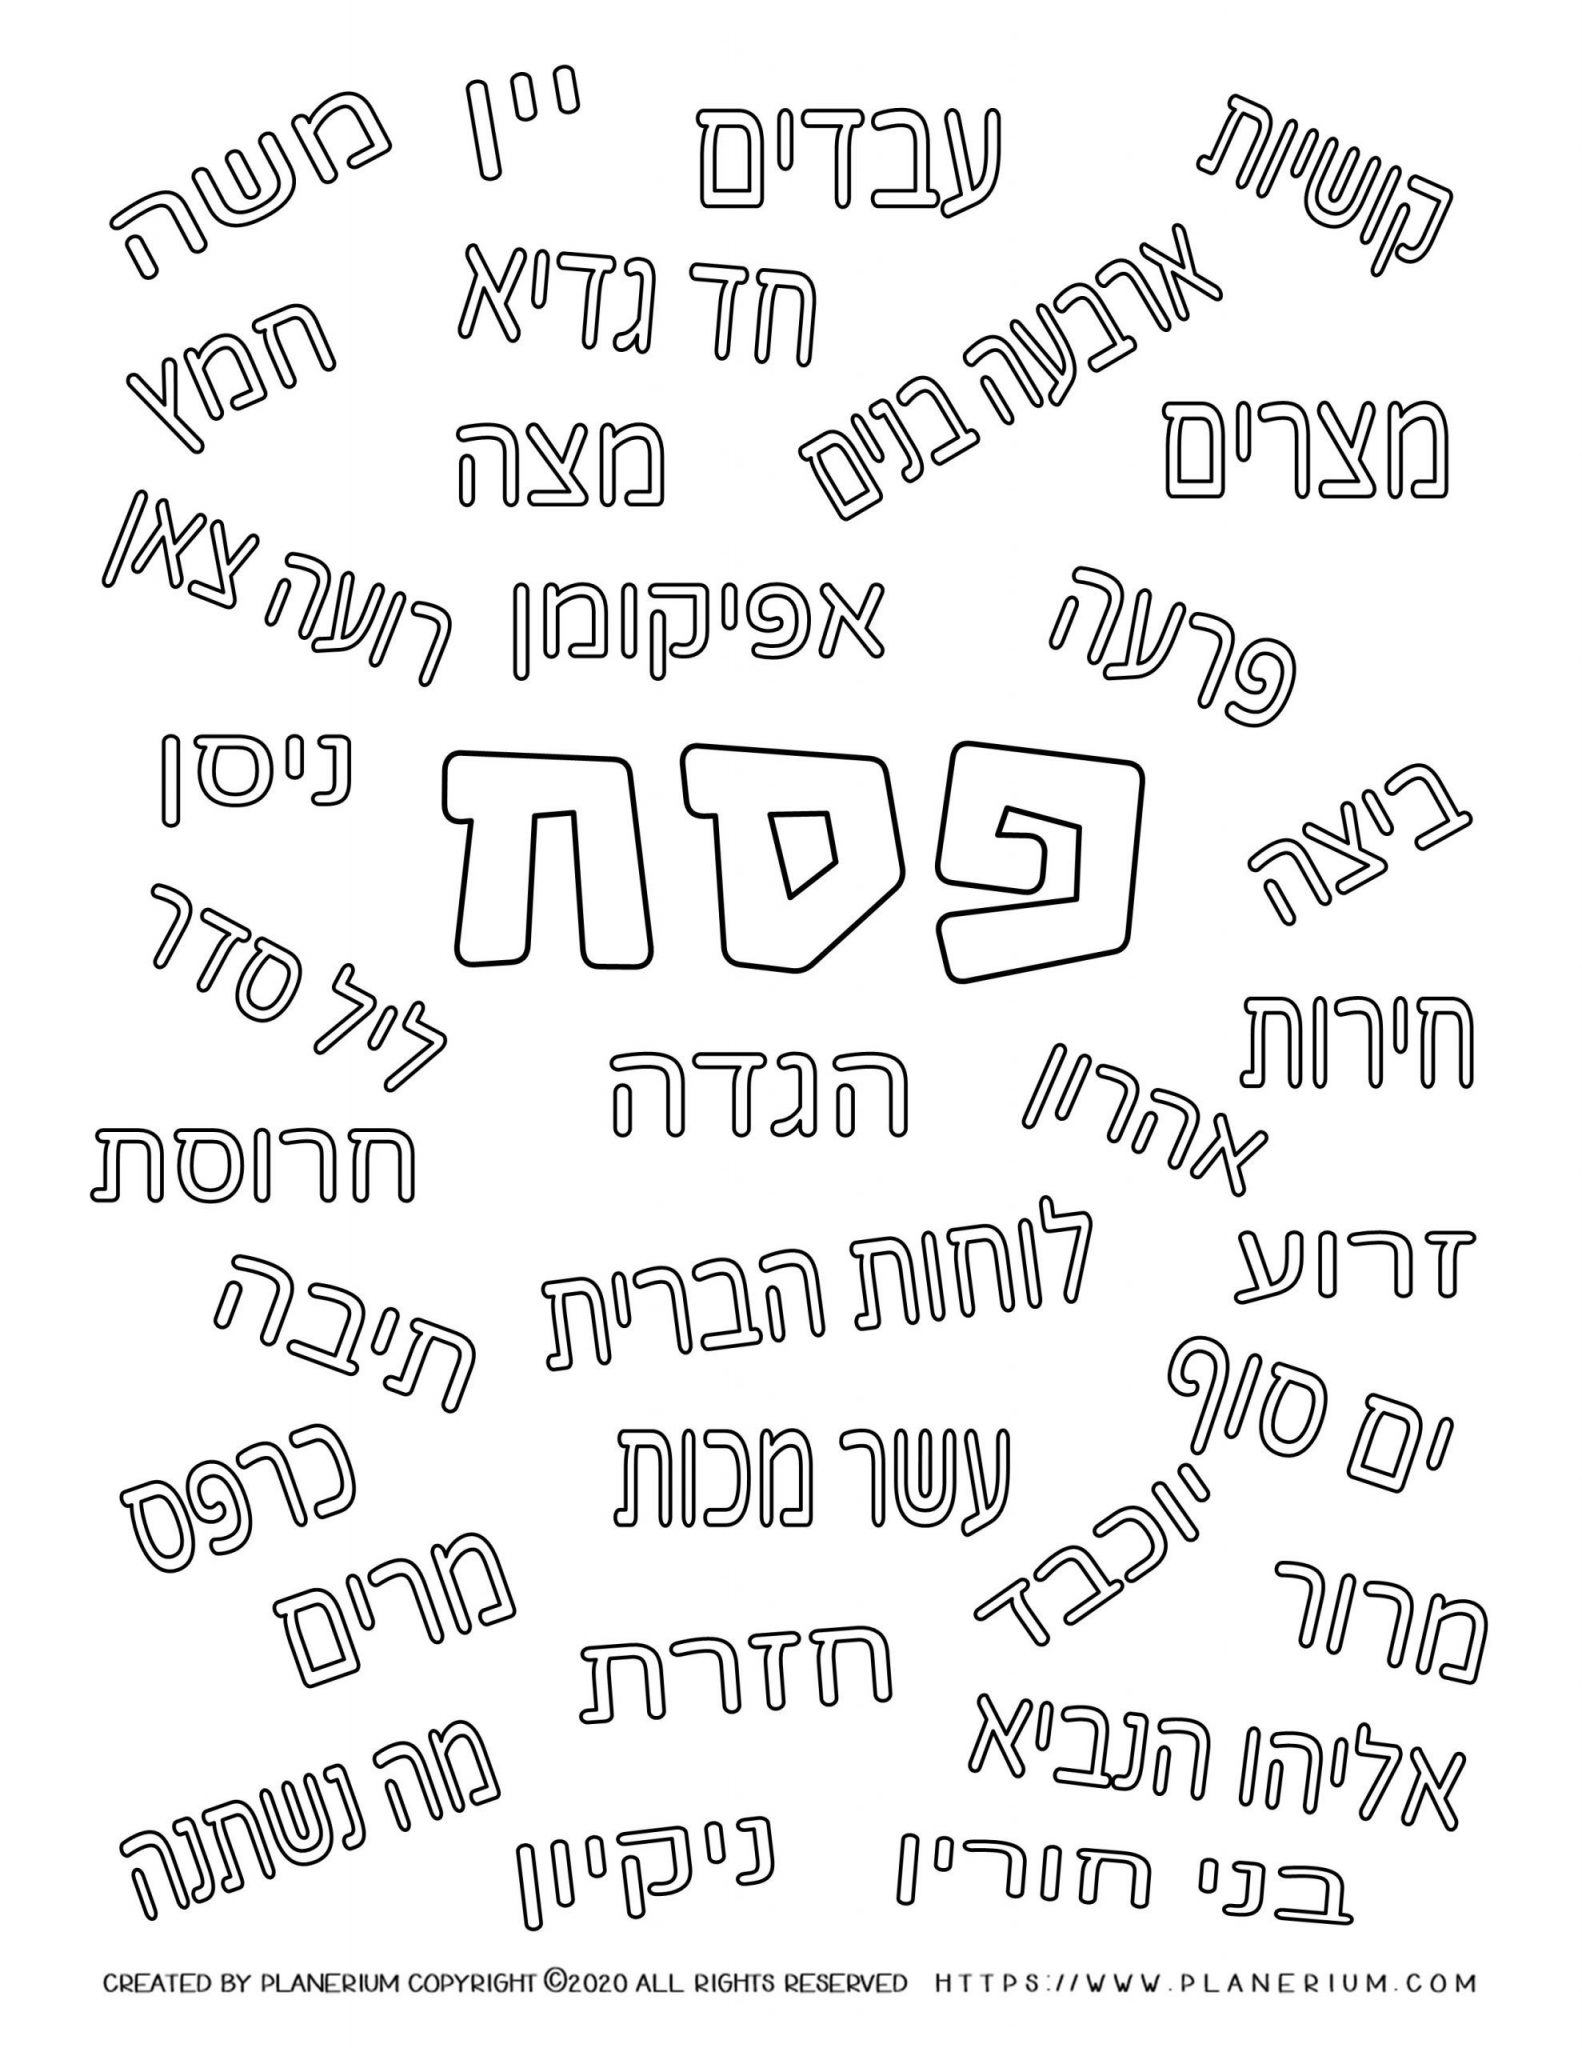 Passover worksheet - Color related words - Hebrew